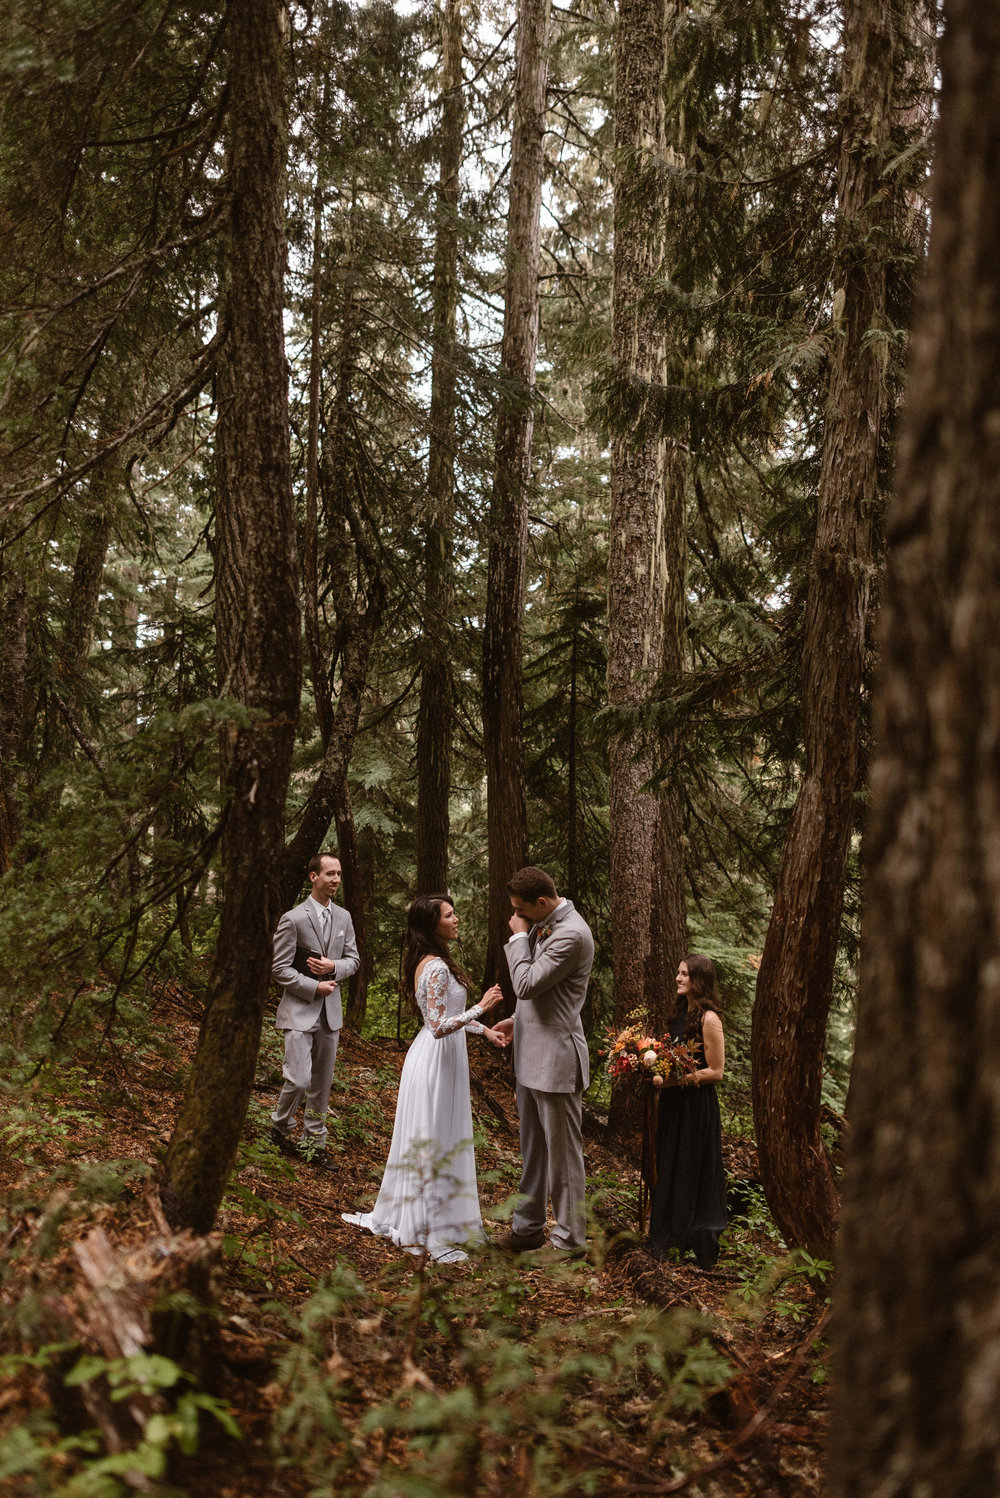 washington-elopement-photographer-mt-ranier-national-park-elopement-adventure-elopement-photographer-rainforest-elopement-hiking-adventure-elopement-photographer-maddie-mae